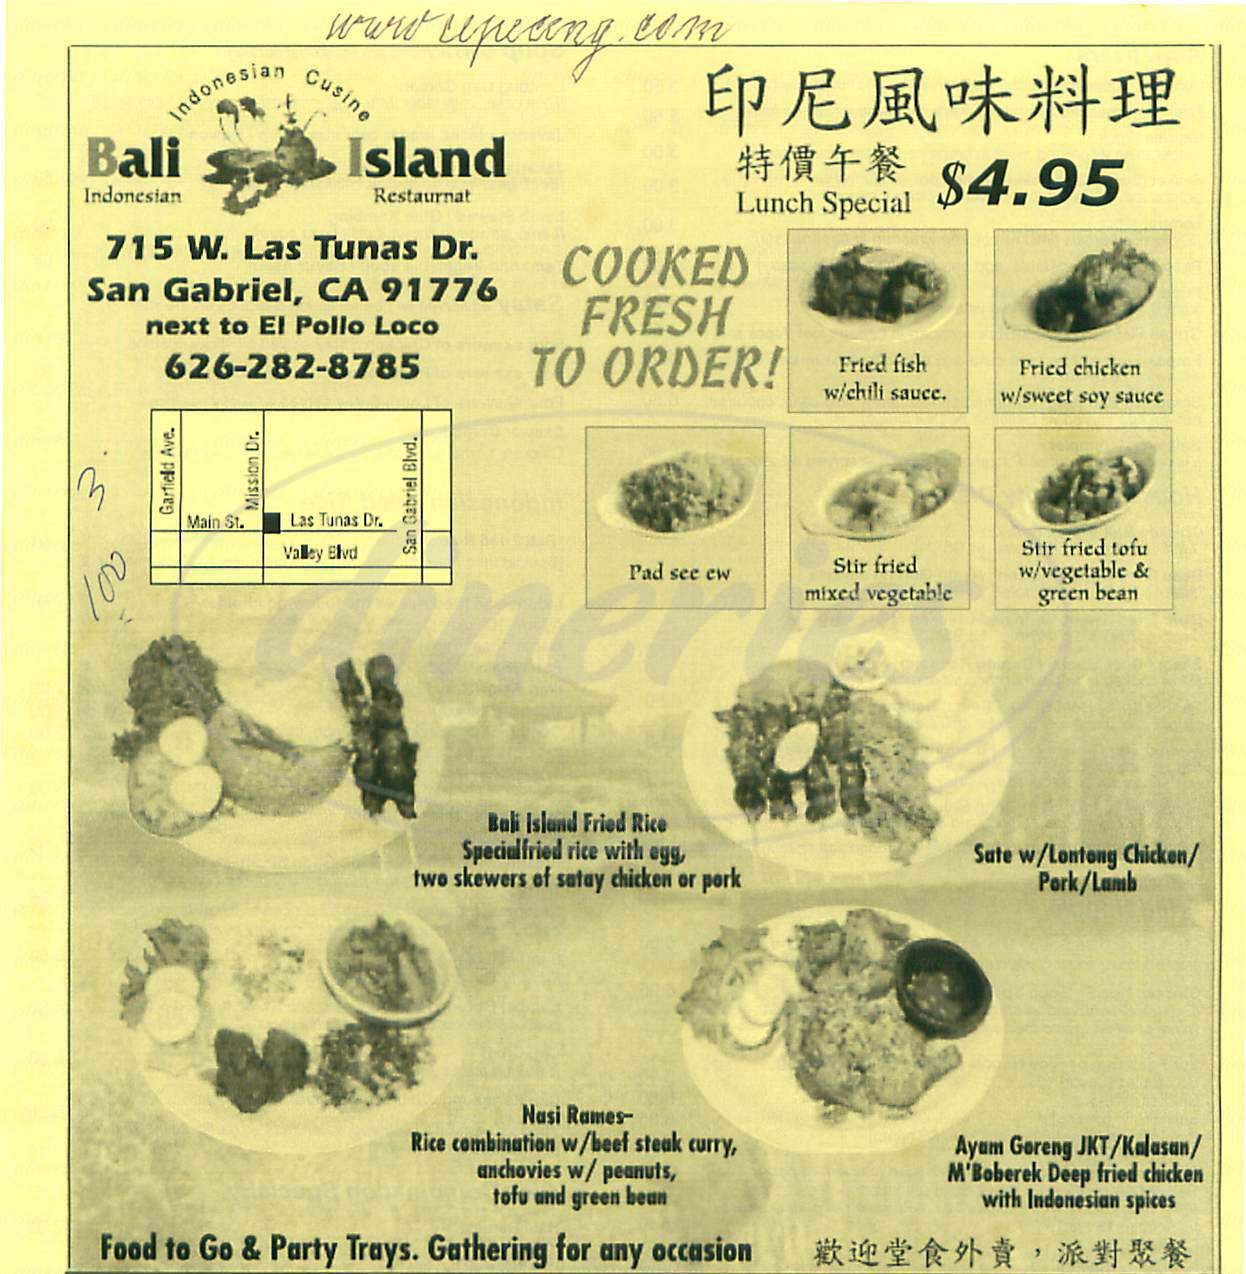 menu for Bali Island